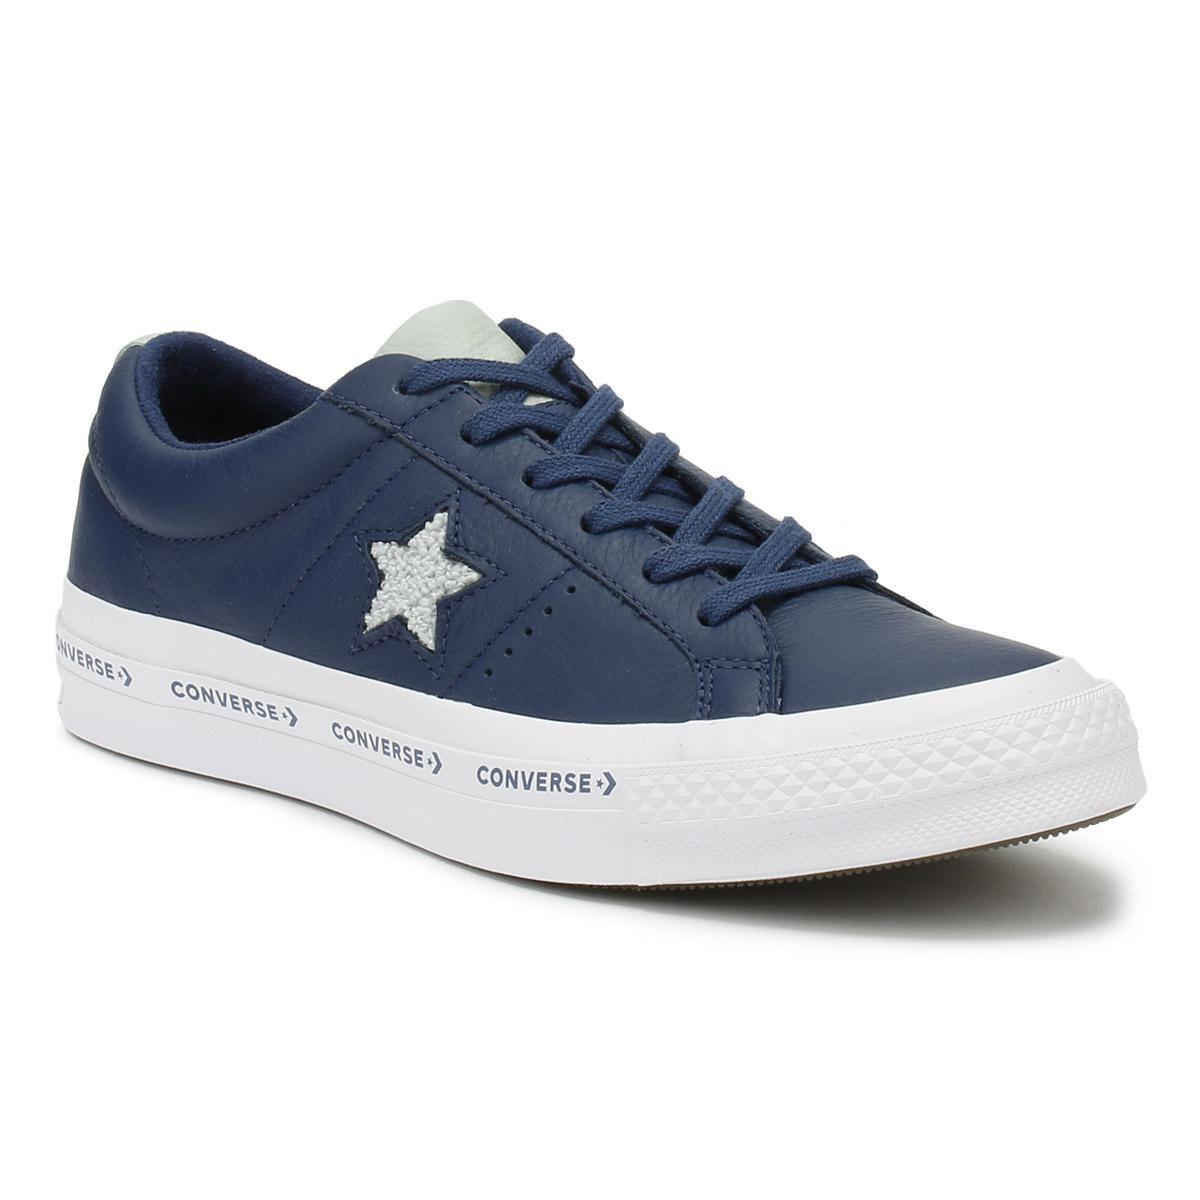 2879306ff8df Converse 159722c One Star Ox Navy-dried Bamboo-white Trainers in ...